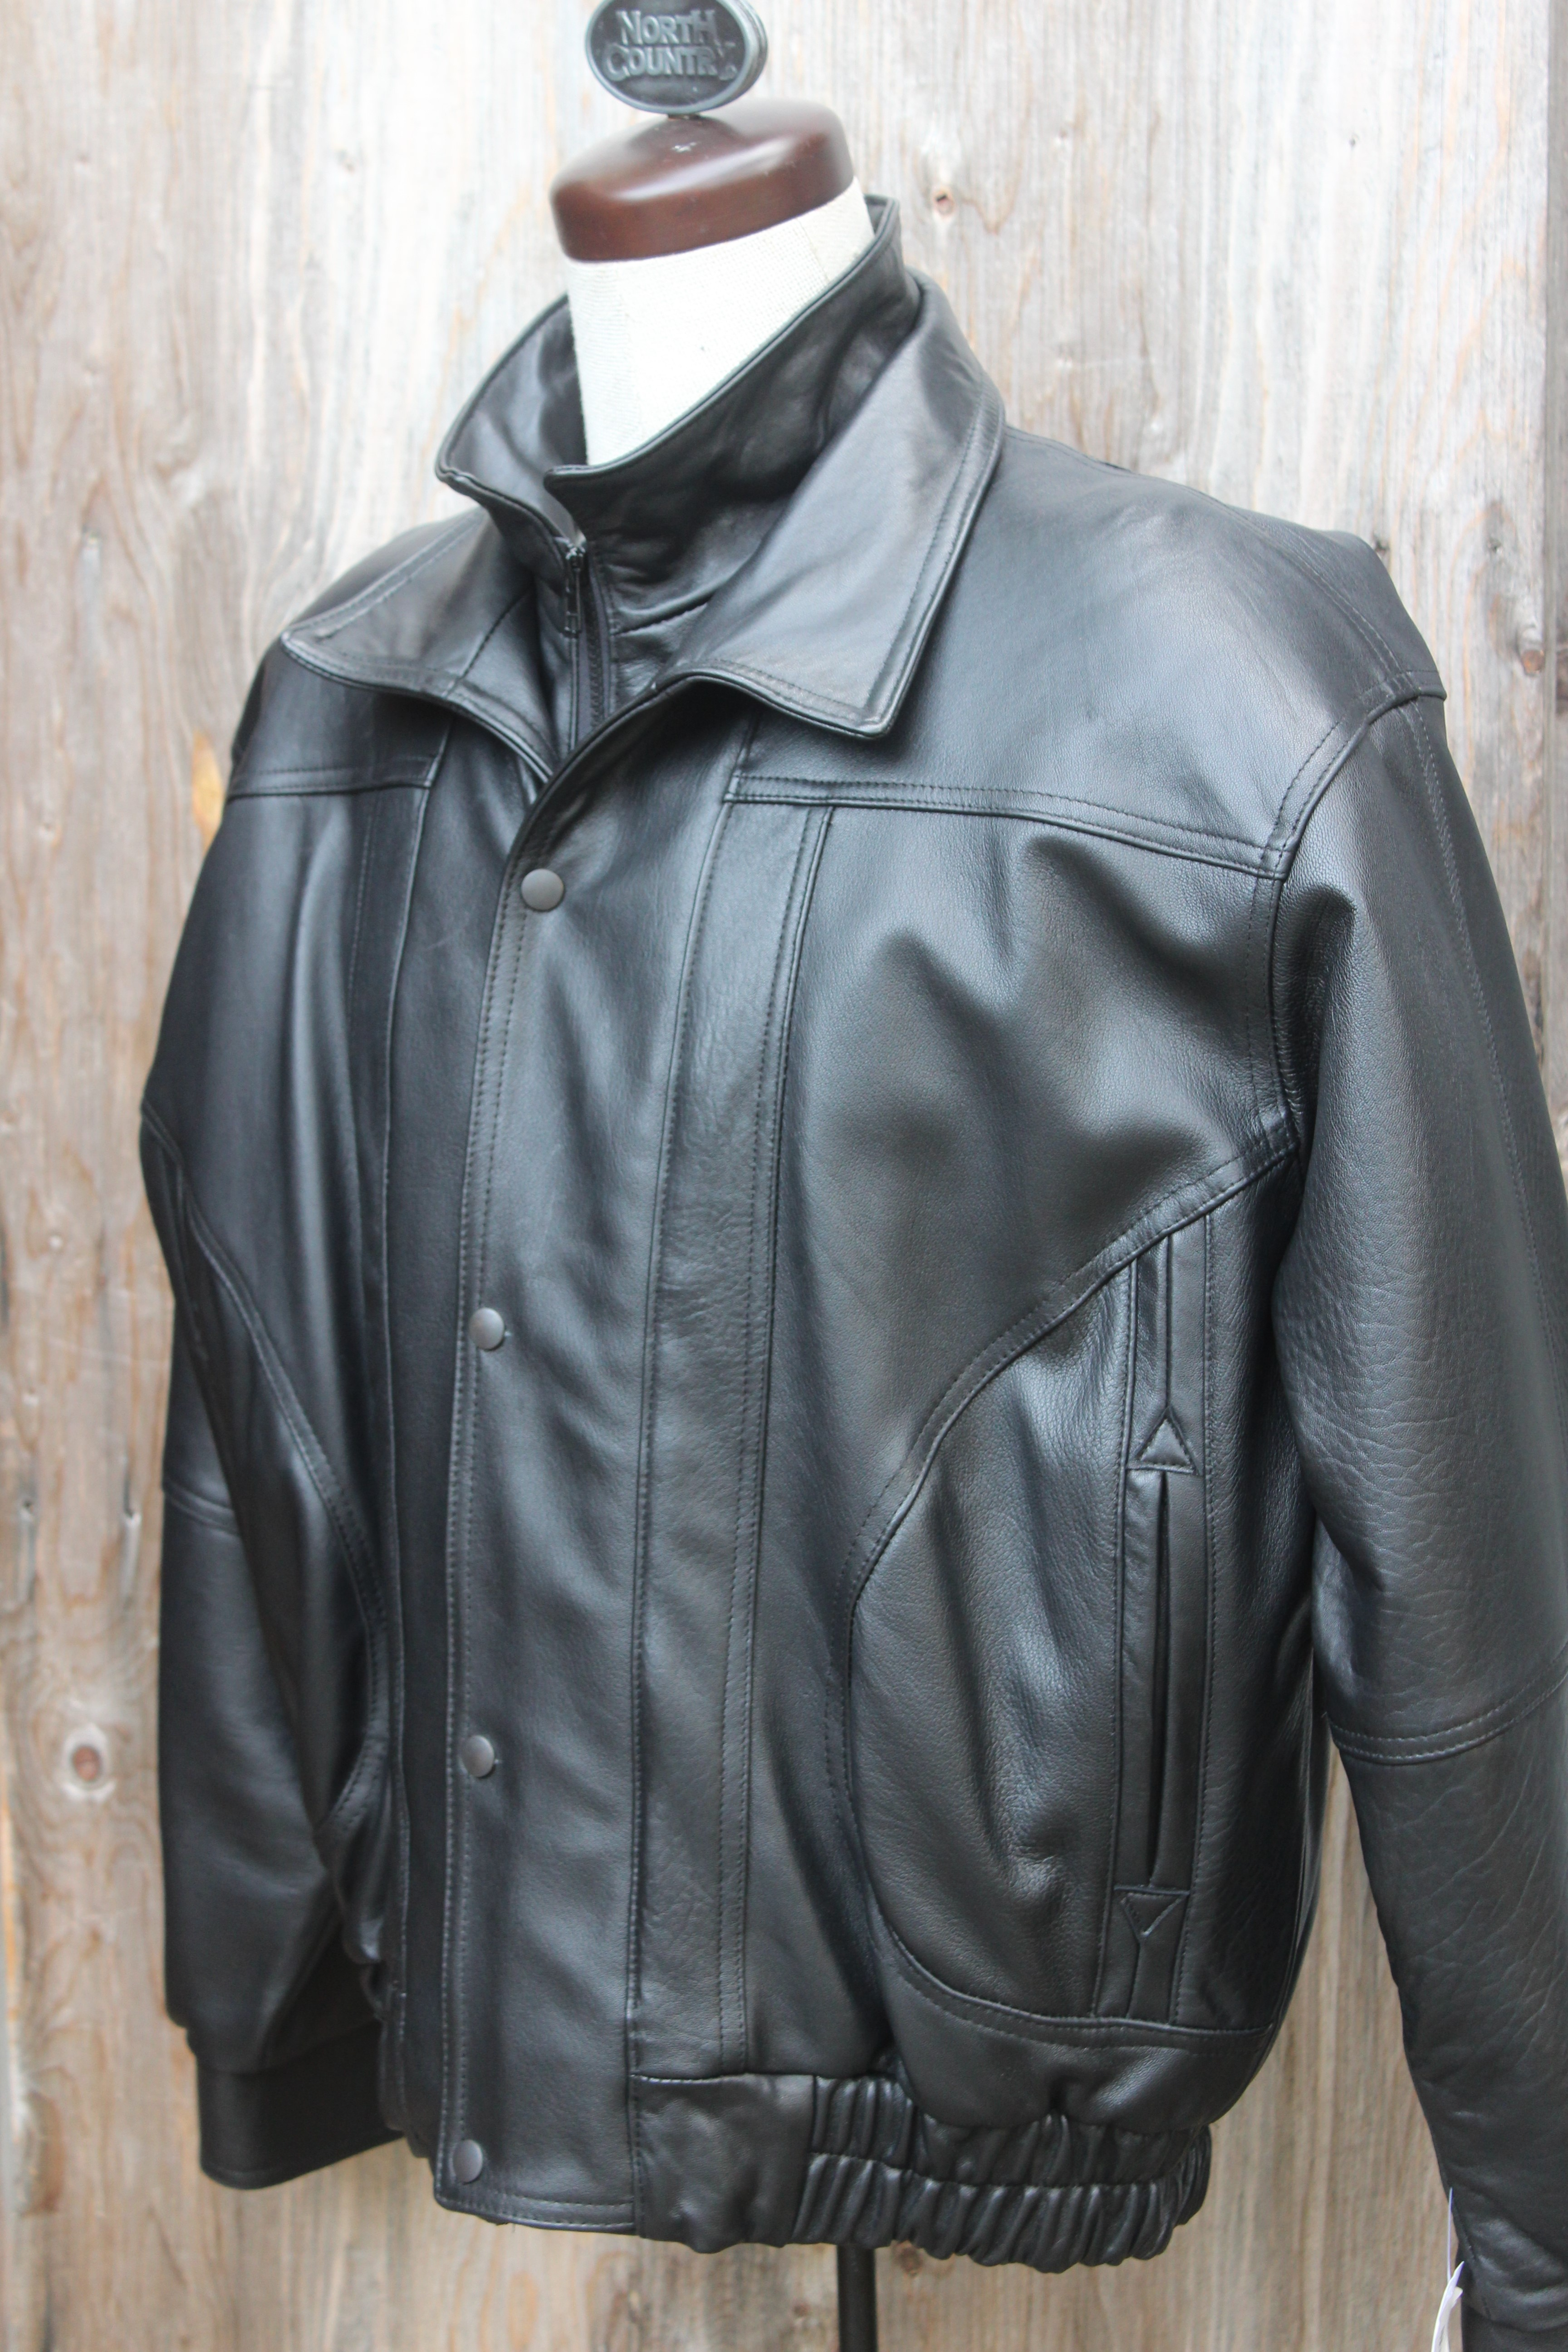 Naked Black- $425.00 Bainton's Tannery Style #: 9506NBK